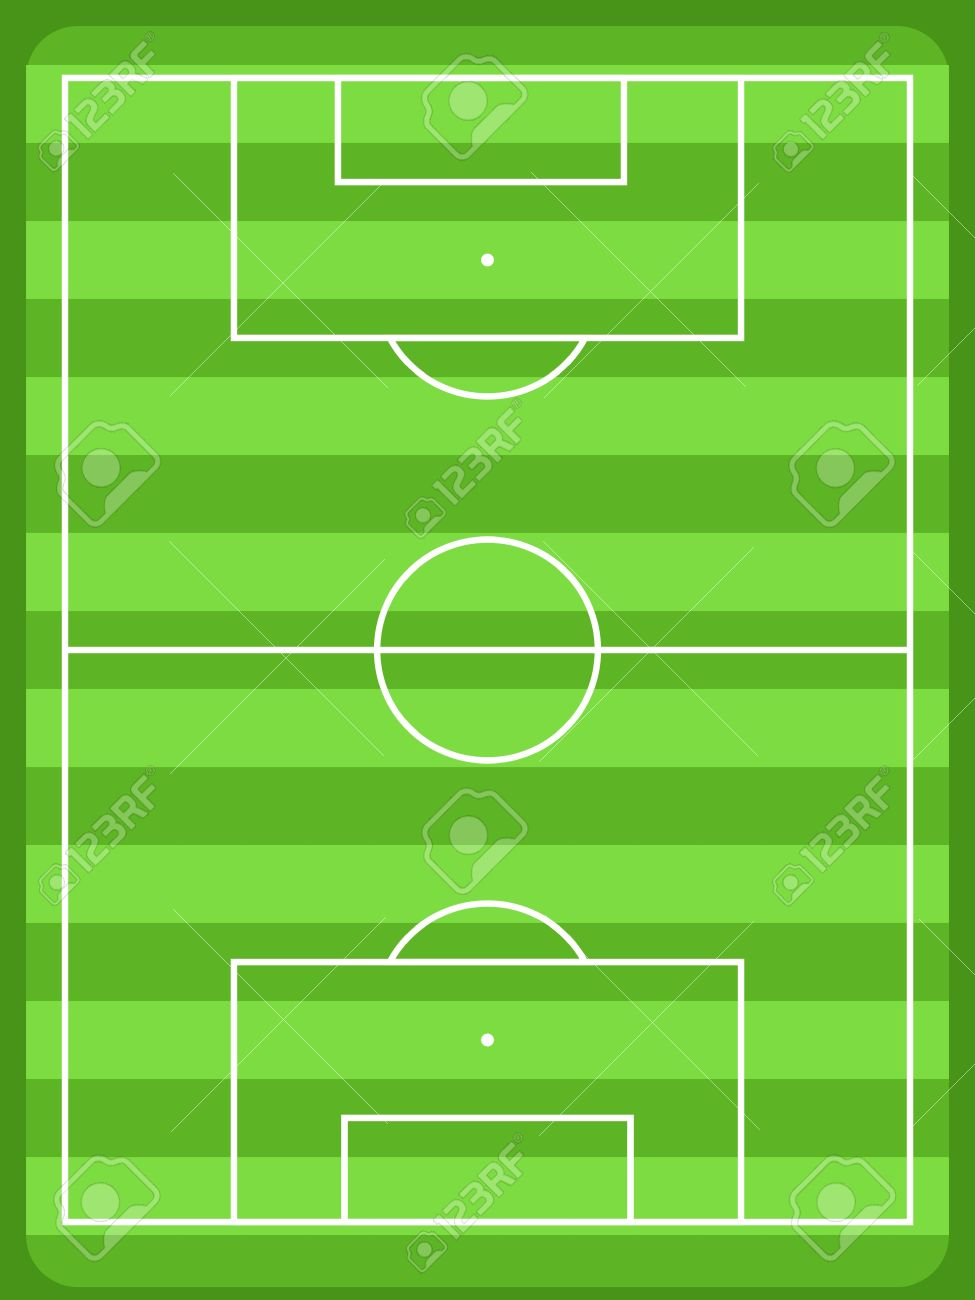 Football field diagram with white lines and green grass  Usable